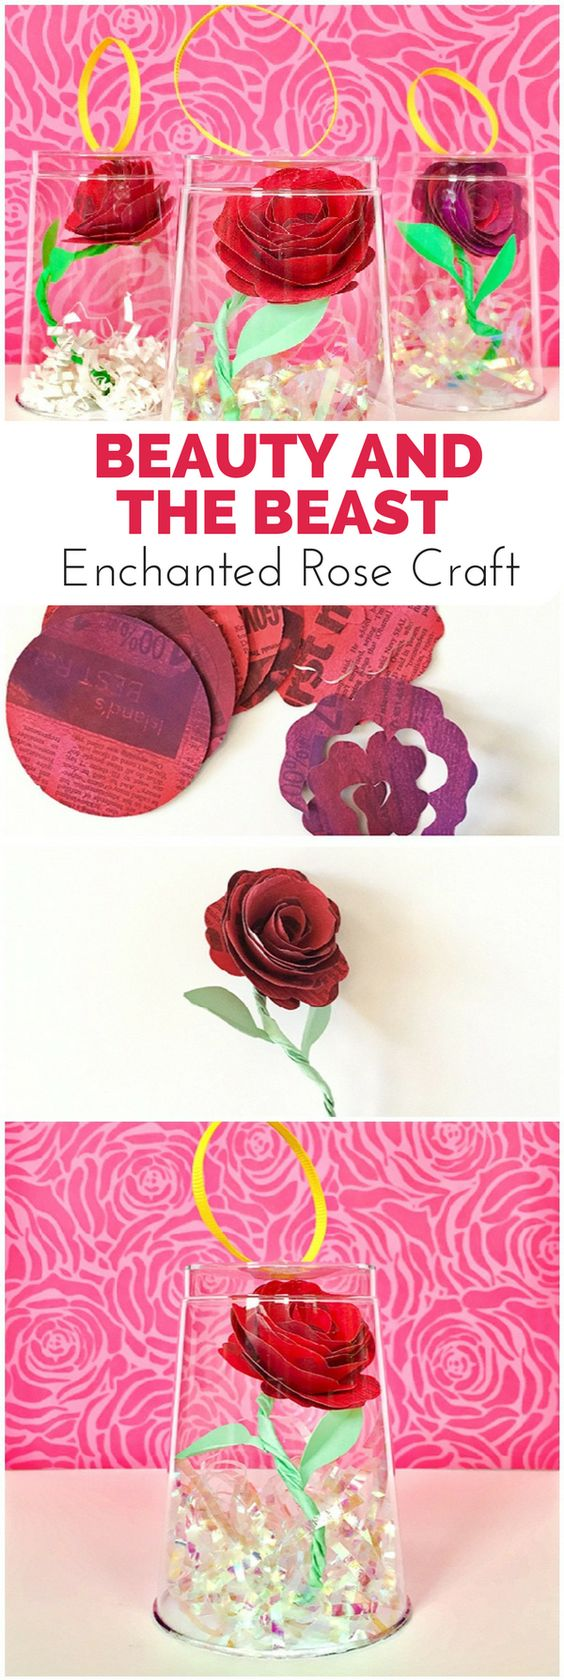 Beauty And The Beast Enchanted Rose Craft Make This